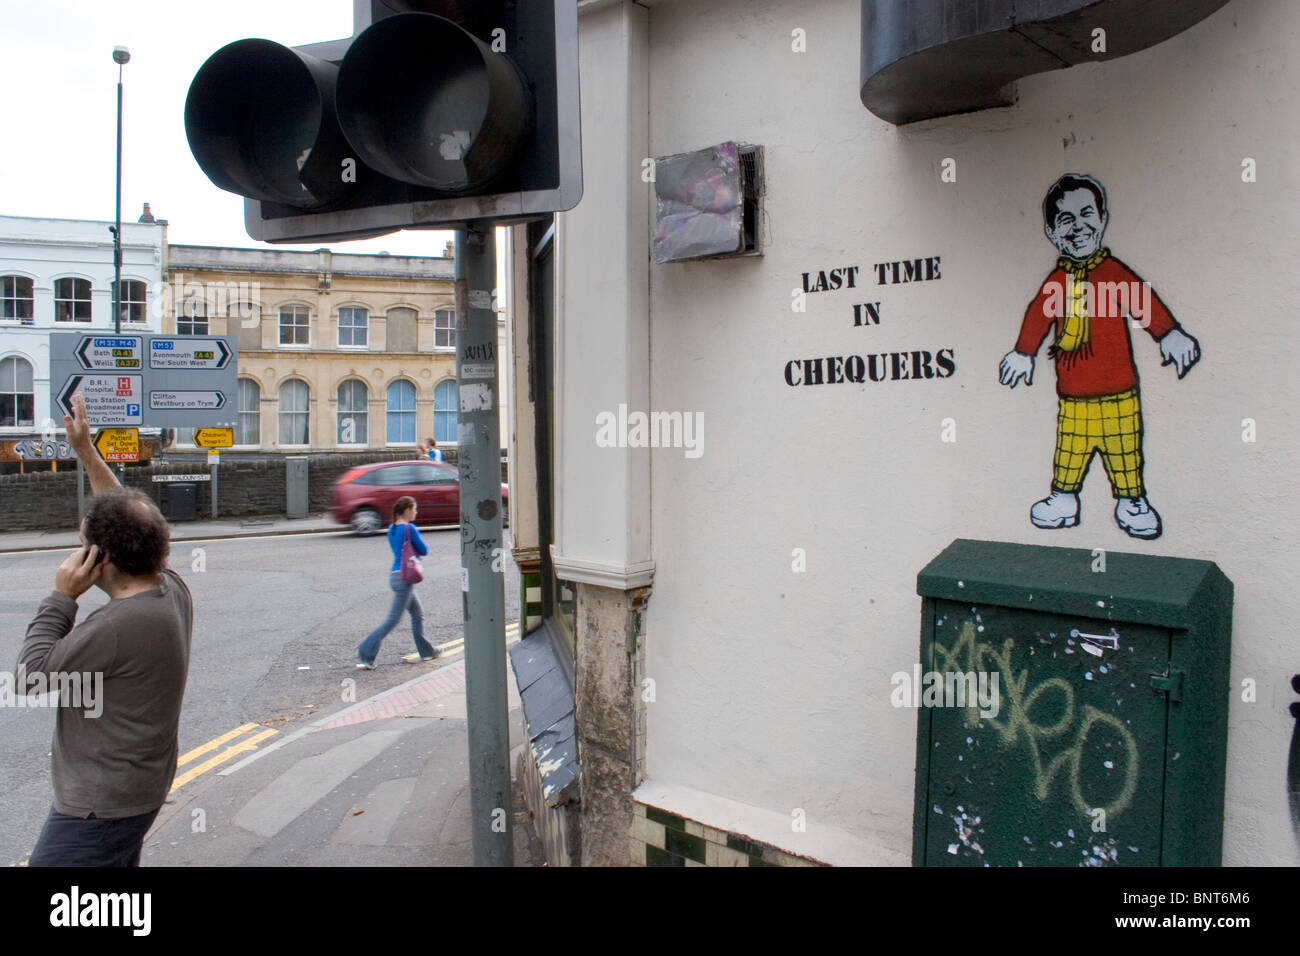 Graffiti by Nick Walker,  depicting Tony Blair dressed as Rupert Bear with the writing 'Last Time in Chequers' - Stock Image